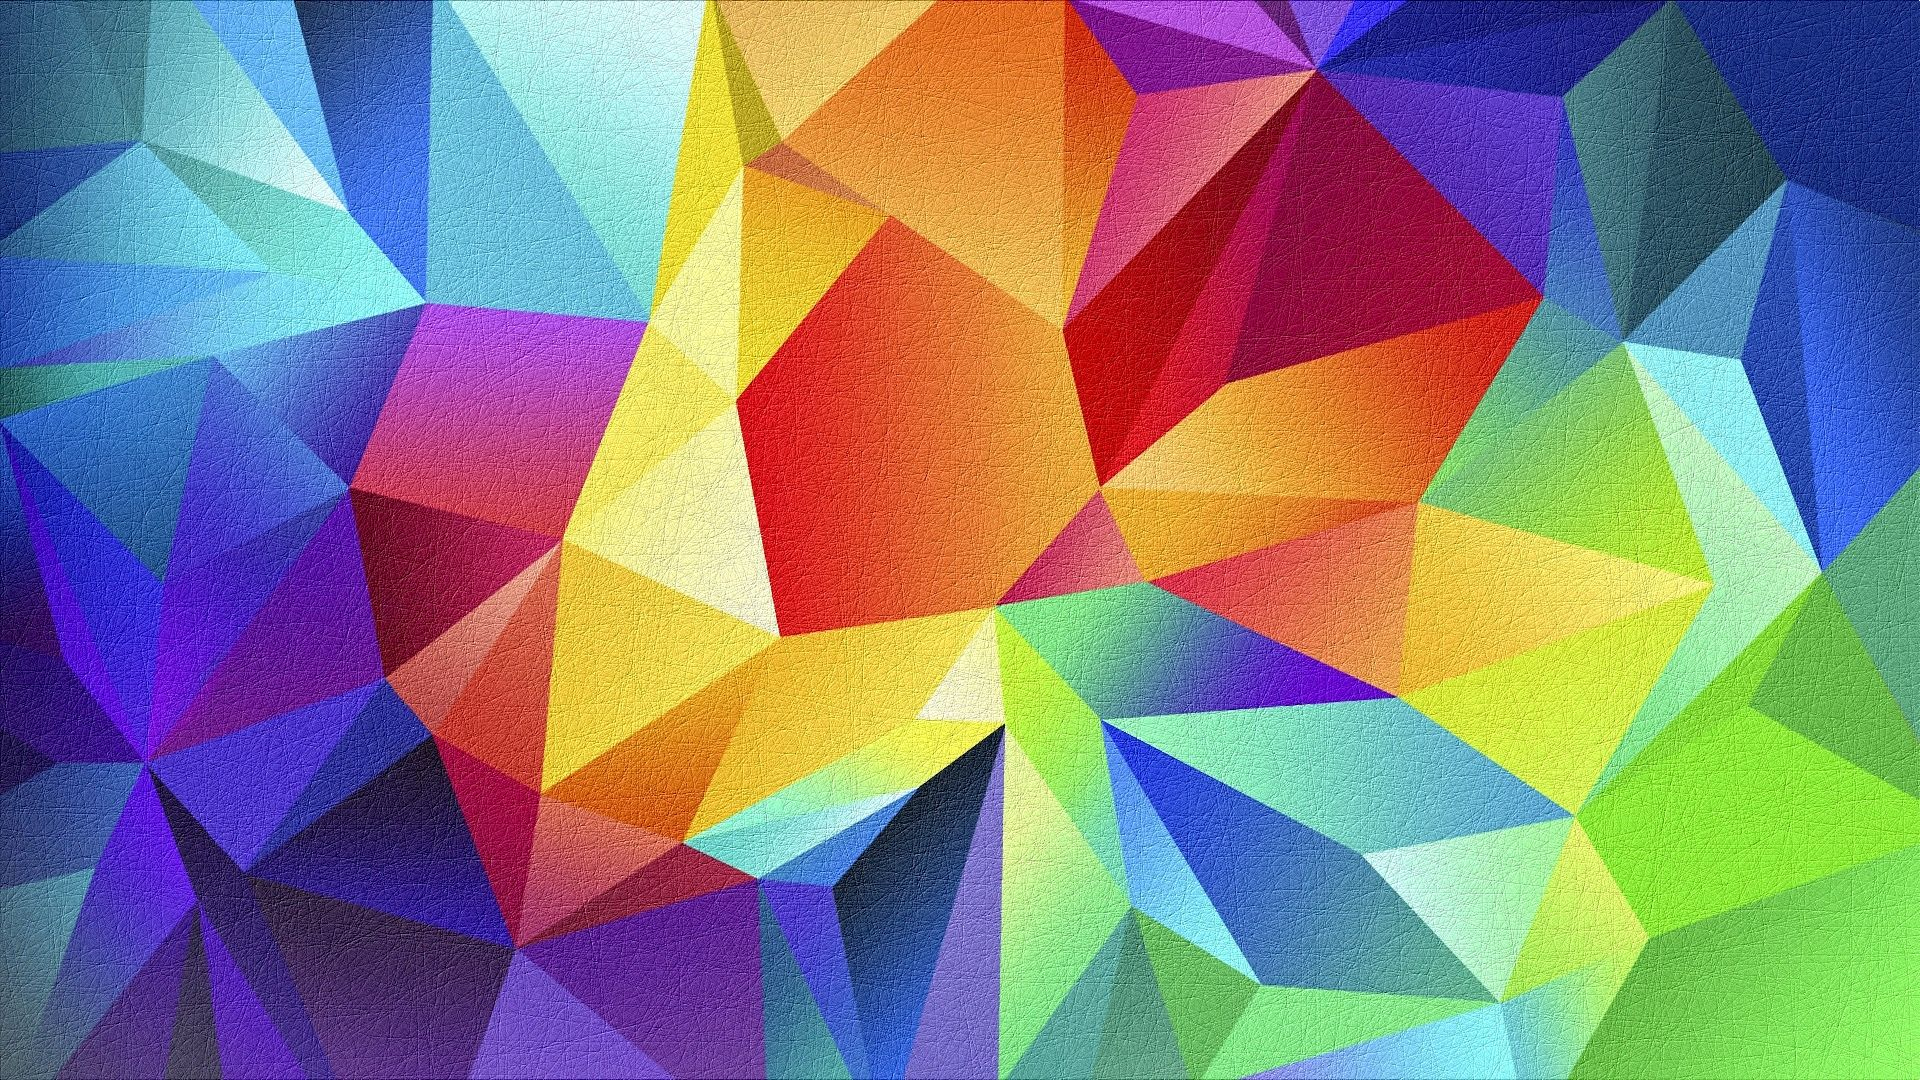 Geometric Shapes Wallpaper Samsung Galaxy S5 S5 Wallpaper Galaxy S5